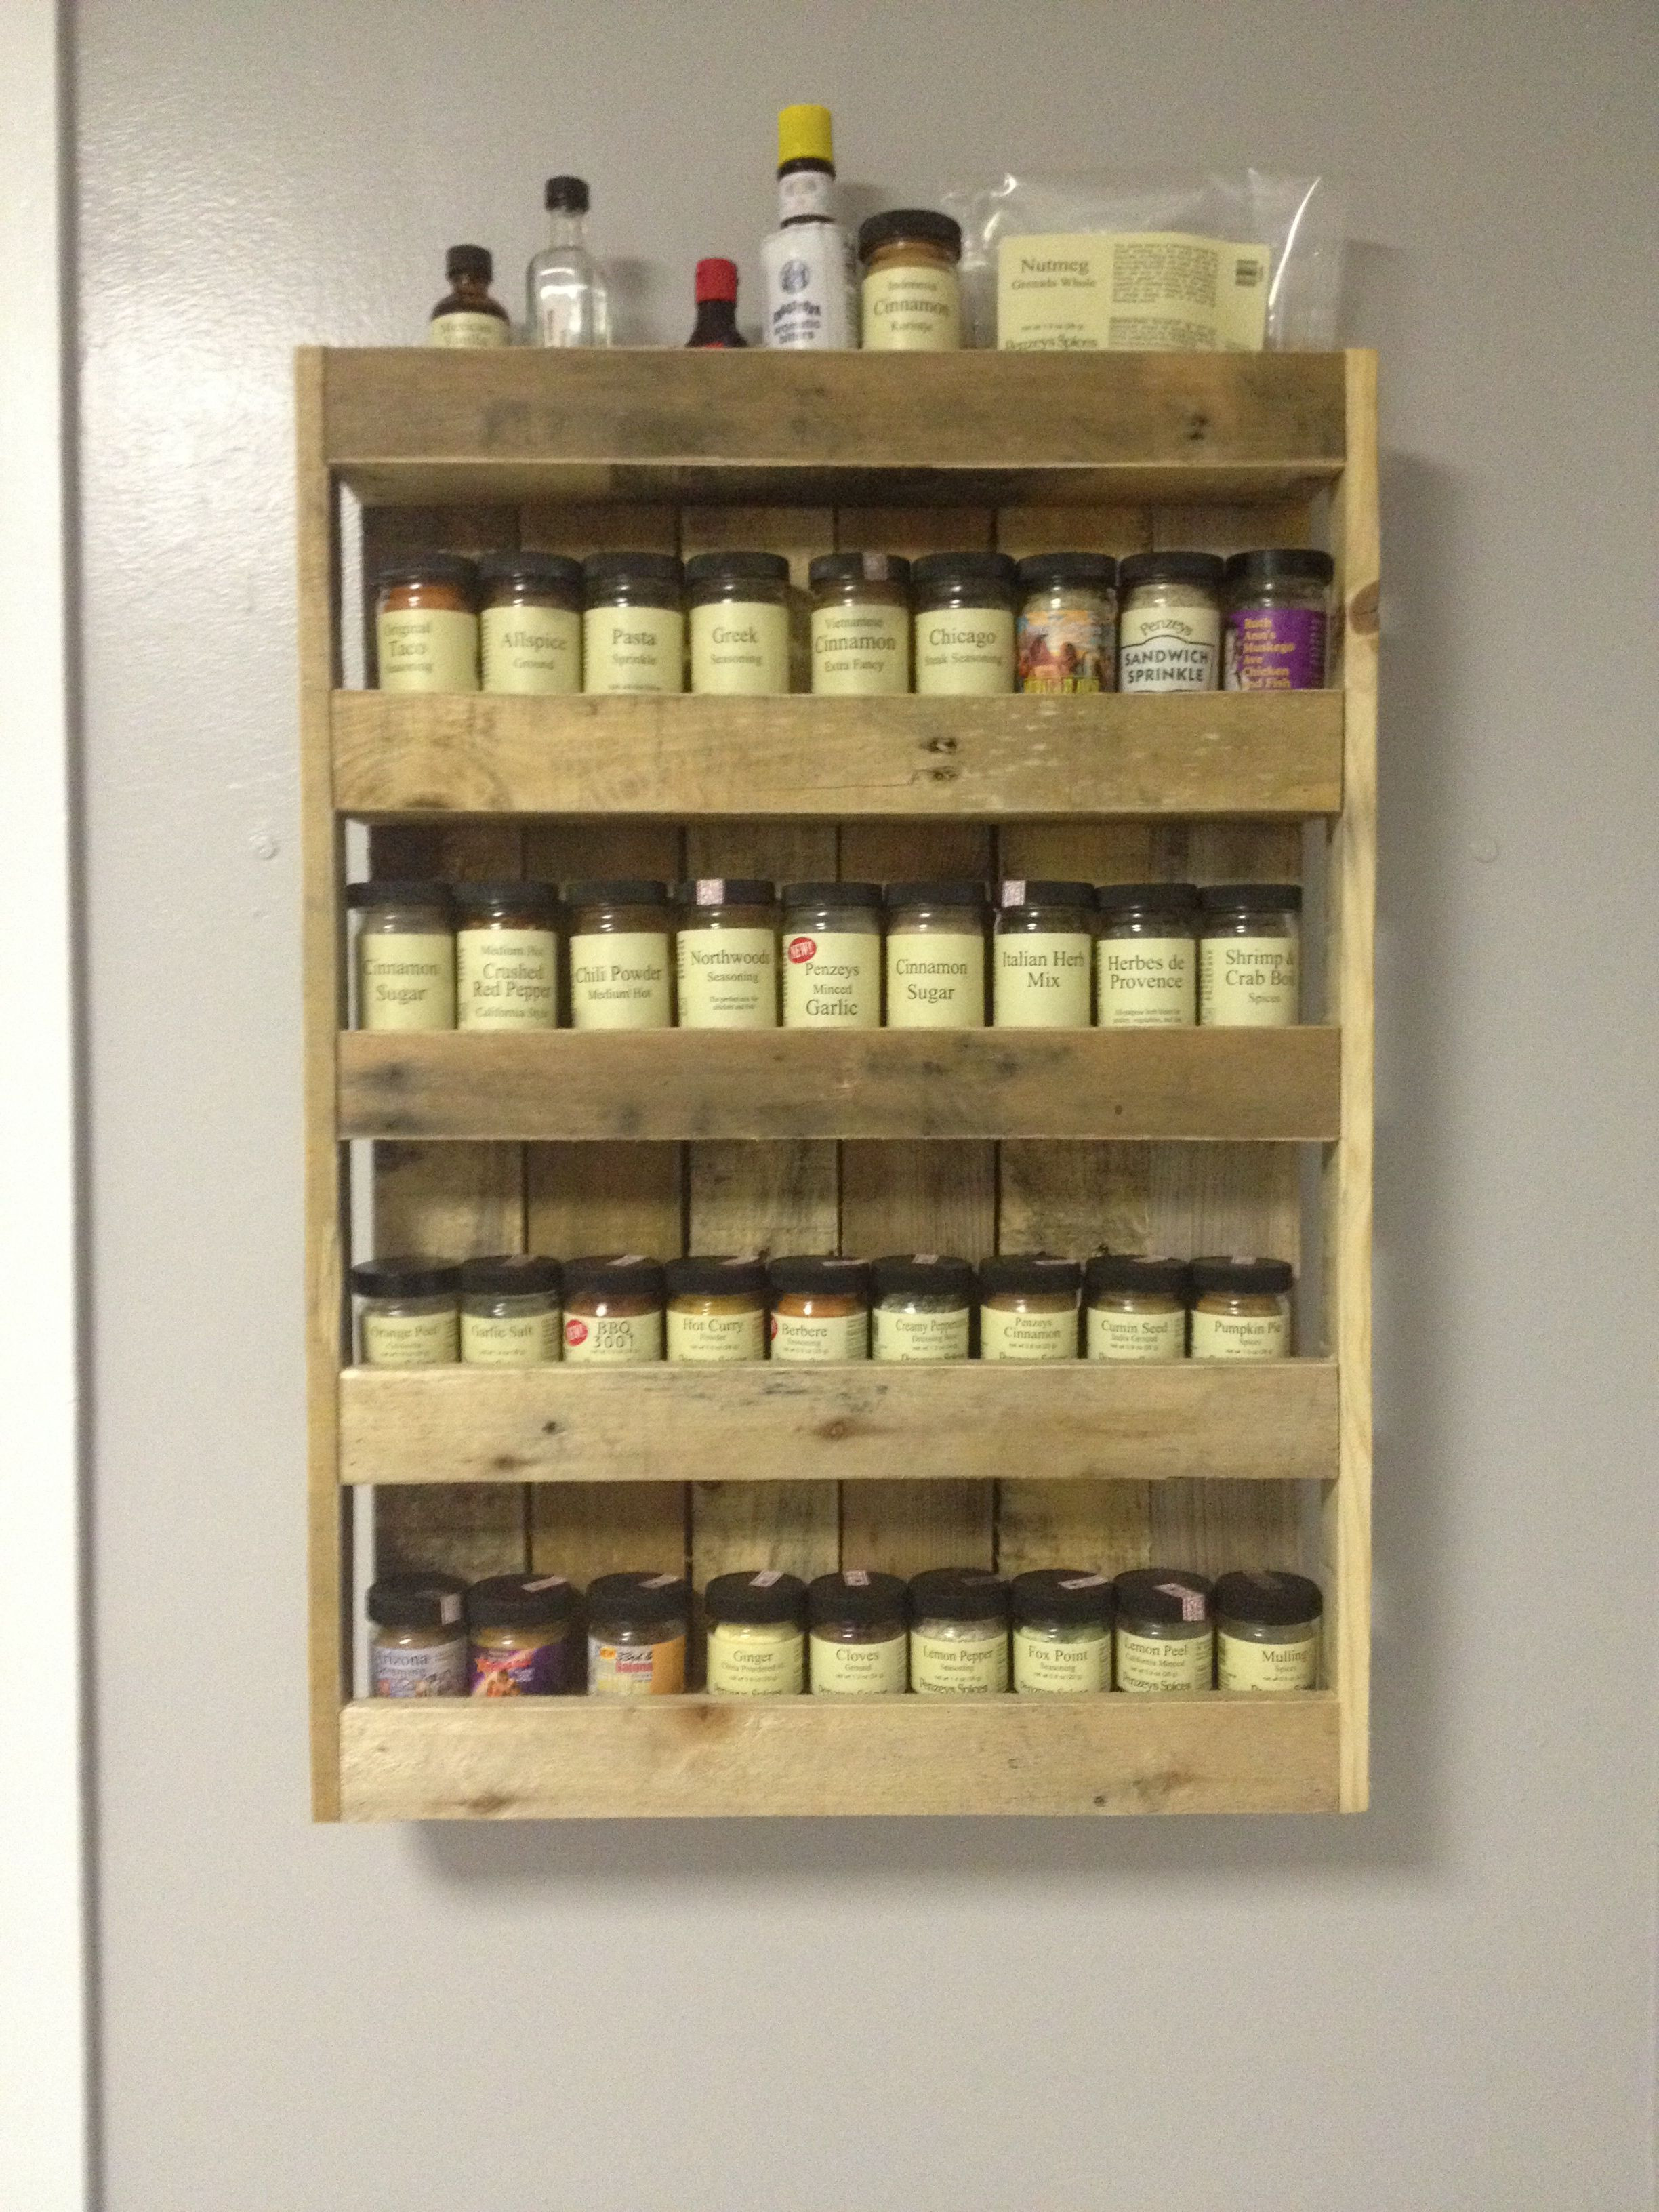 Best ideas about DIY Spice Rack Plans . Save or Pin Spice rack made from pallets Pallet ideas Now.